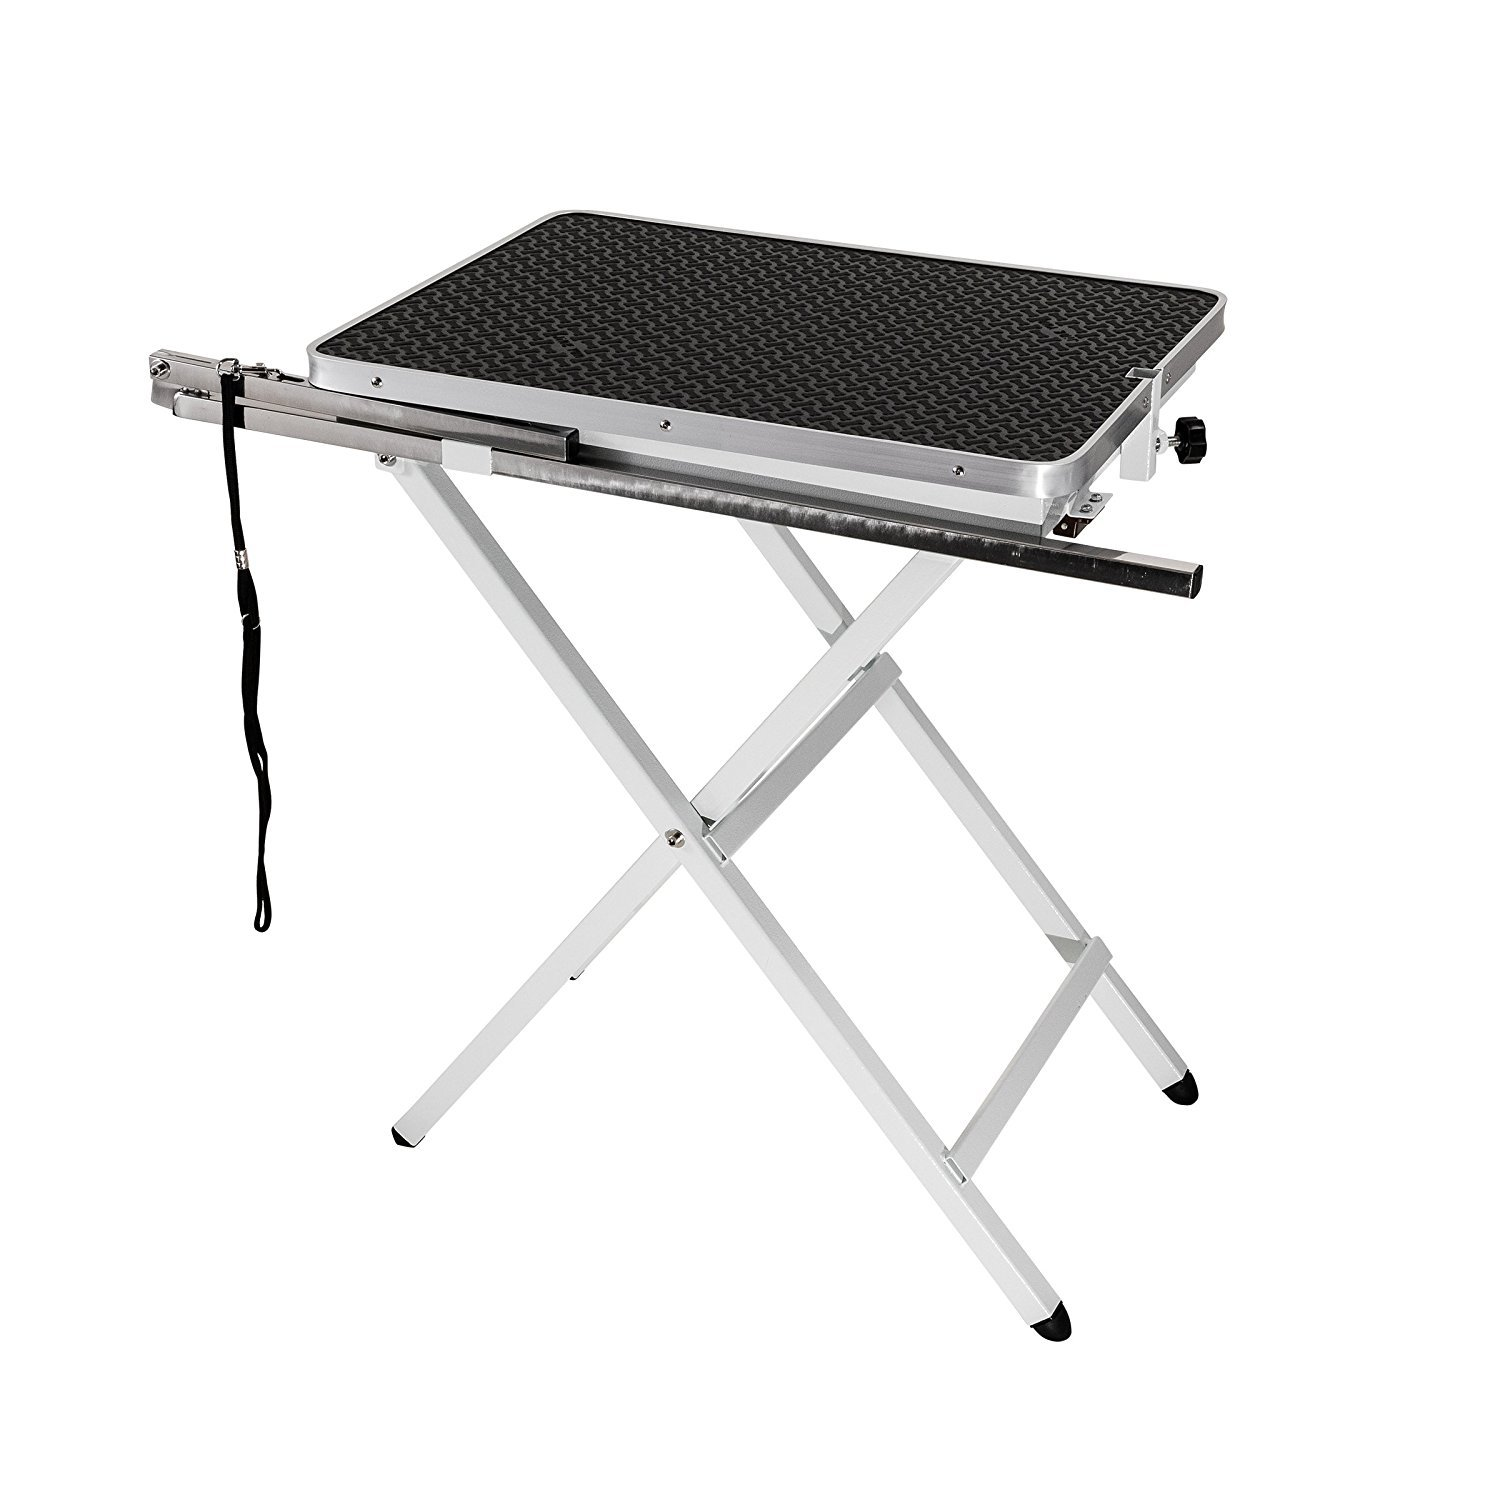 Flying Pig Grooming Pet Dog Portable Table, Black, Mini Size/24''L x 18''W by Flying Pig Grooming (Image #3)